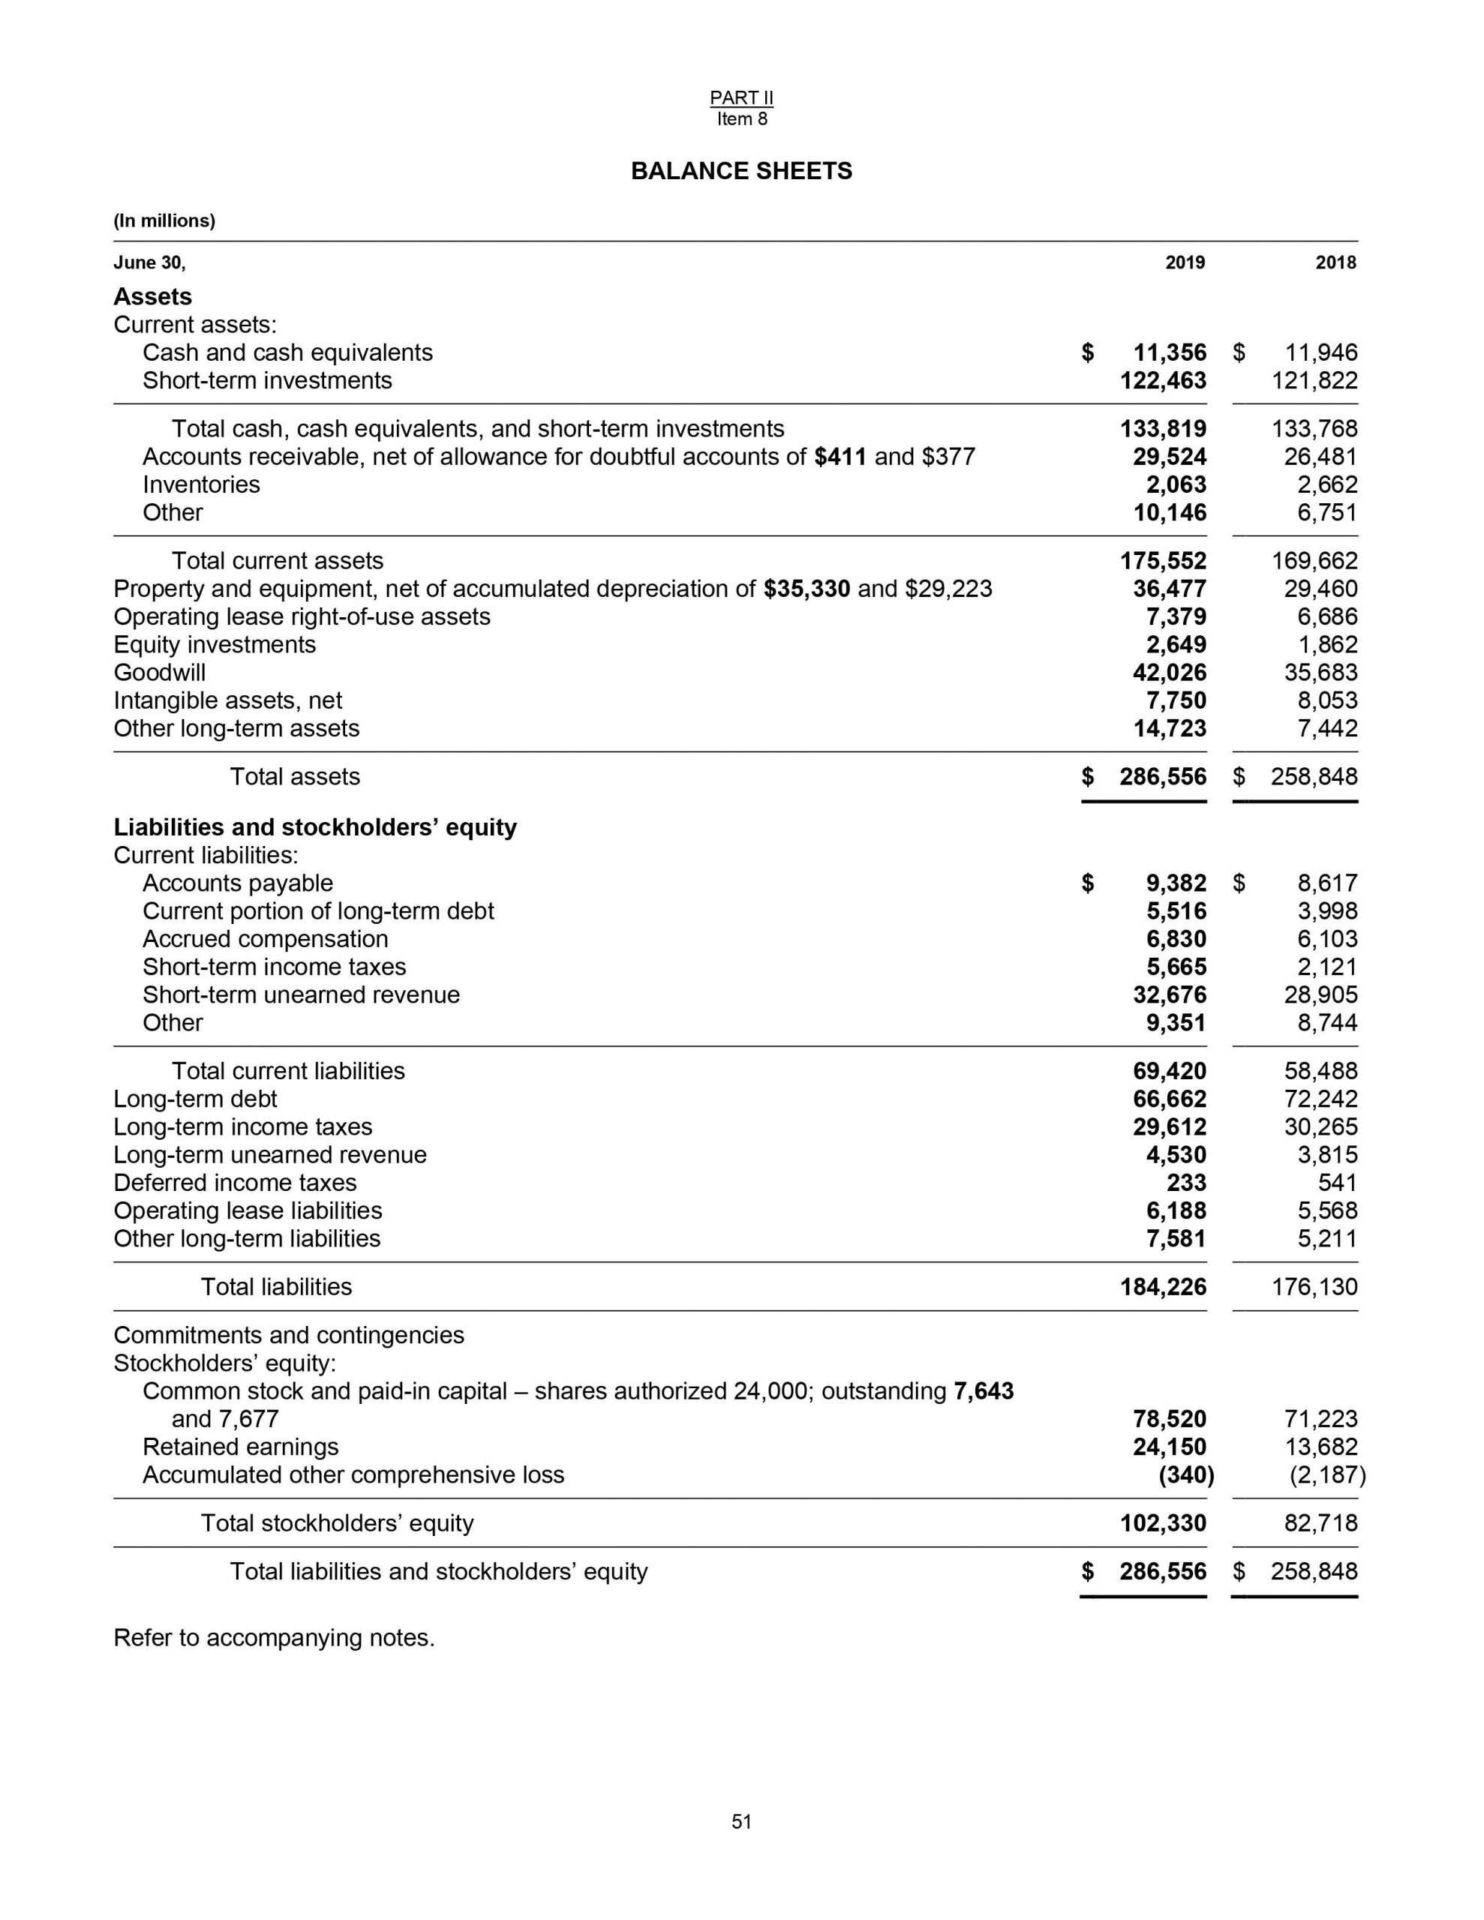 Simple Balance Sheet Structure Breakdown By Each Component